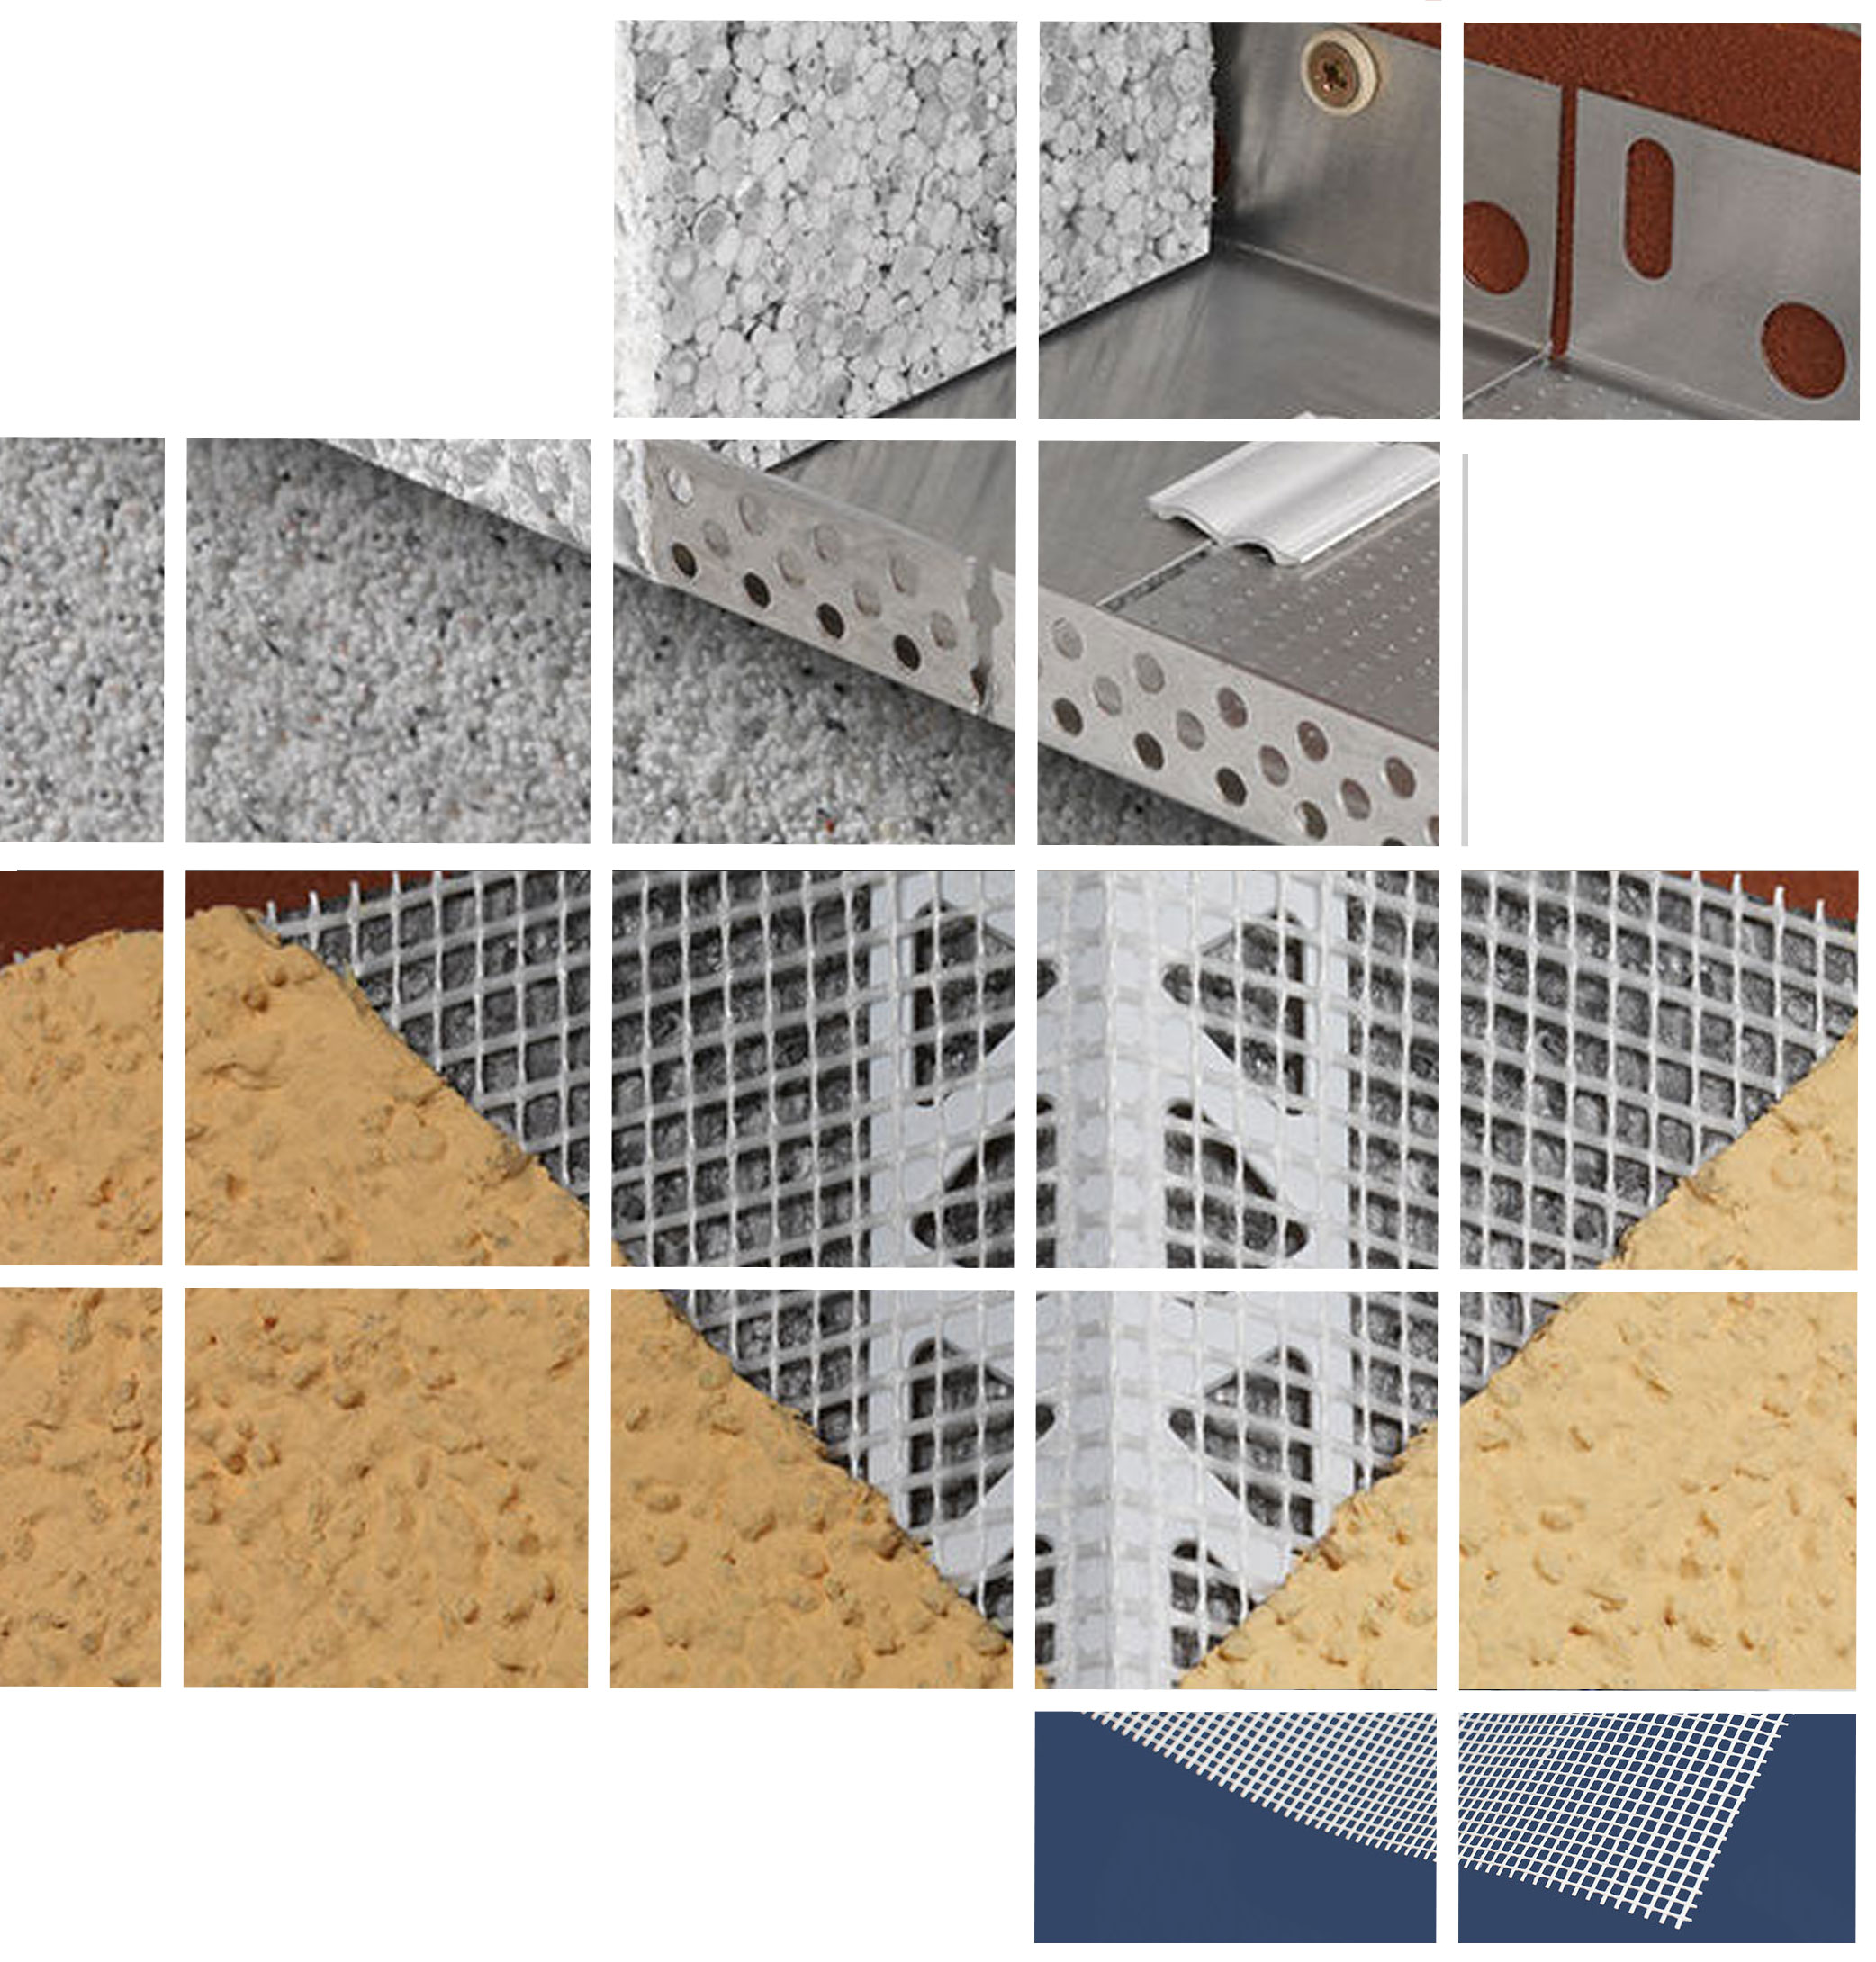 render insulation beads, pvc mesh and starter track for external insulation applications